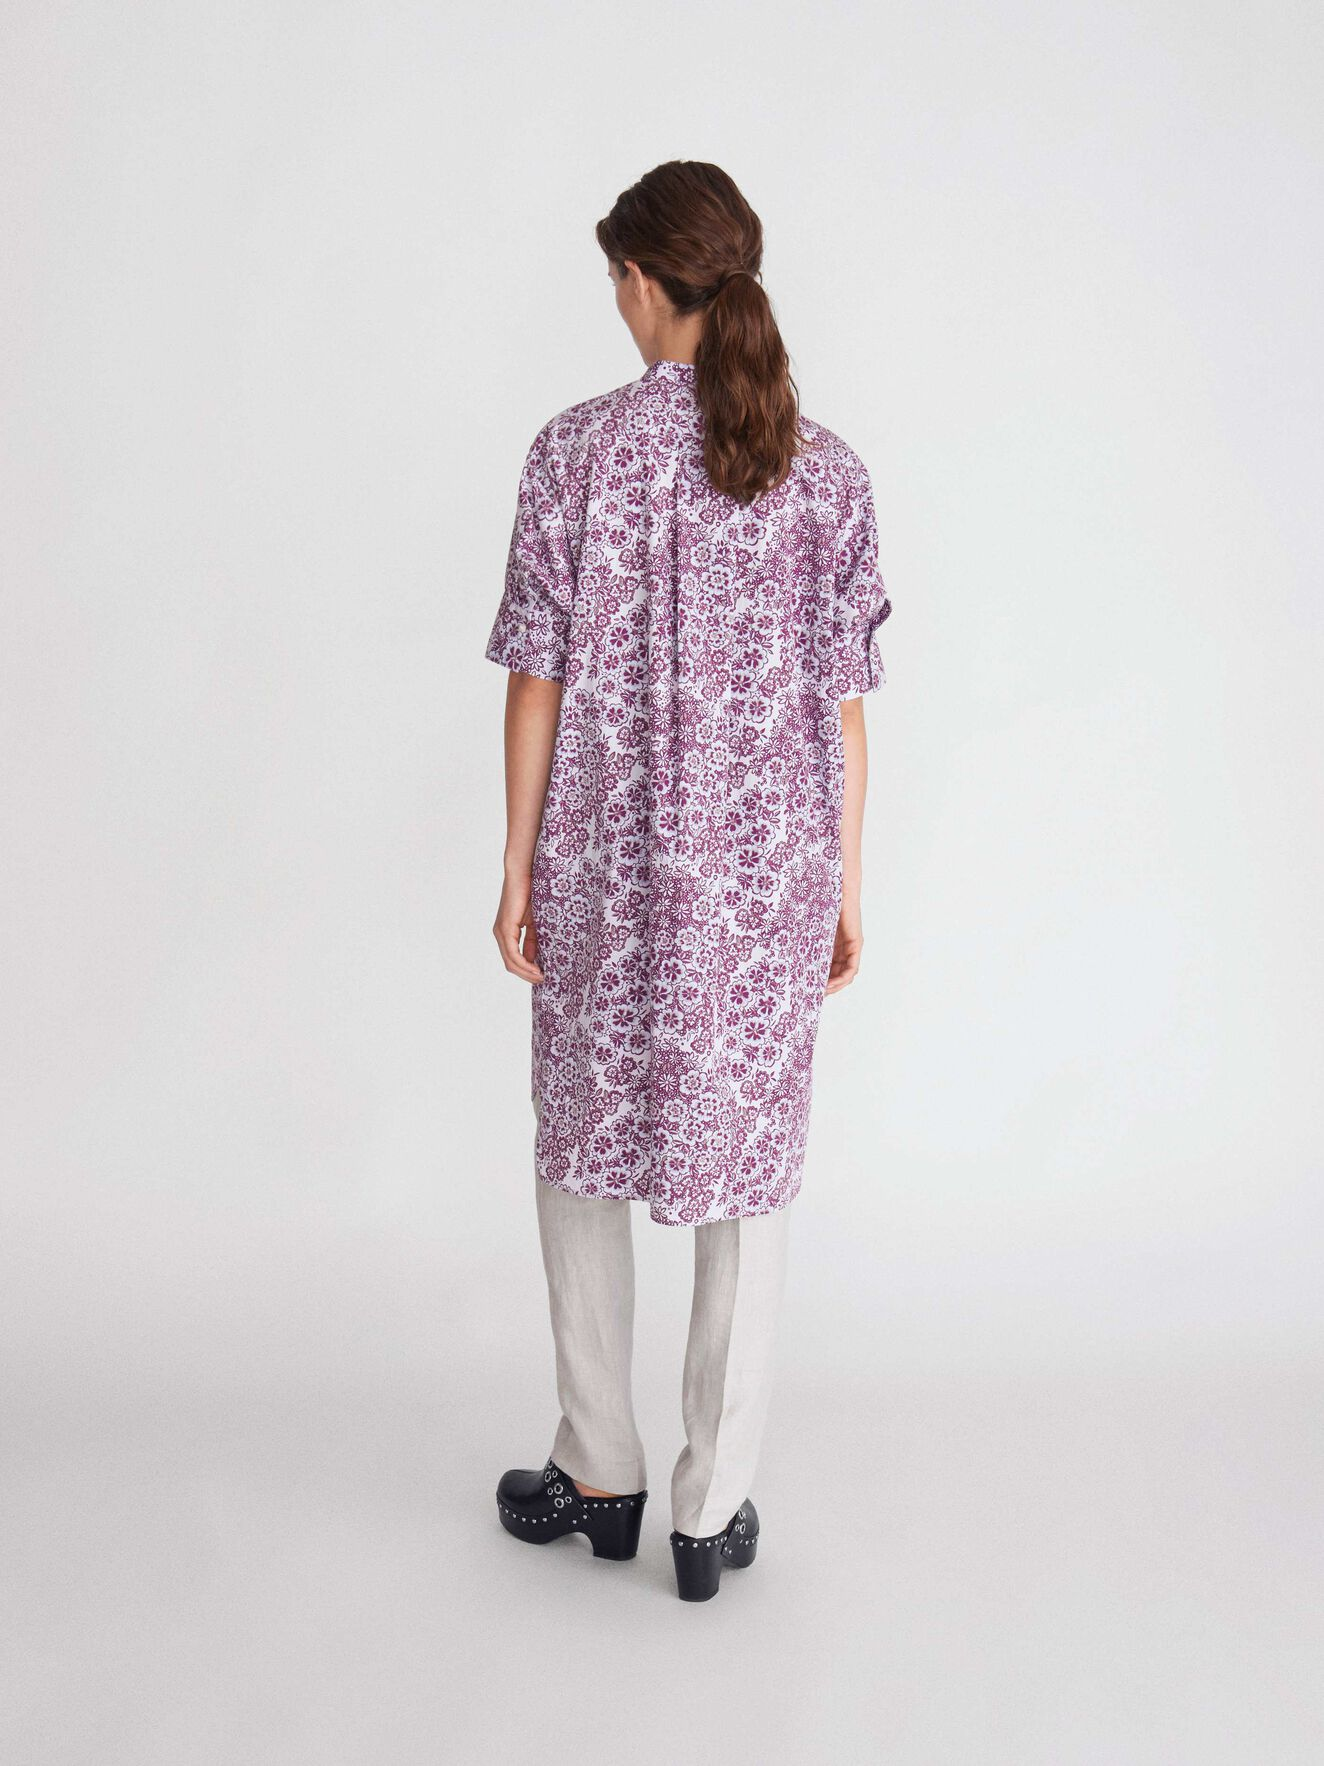 Heus P Dress in Print from Tiger of Sweden